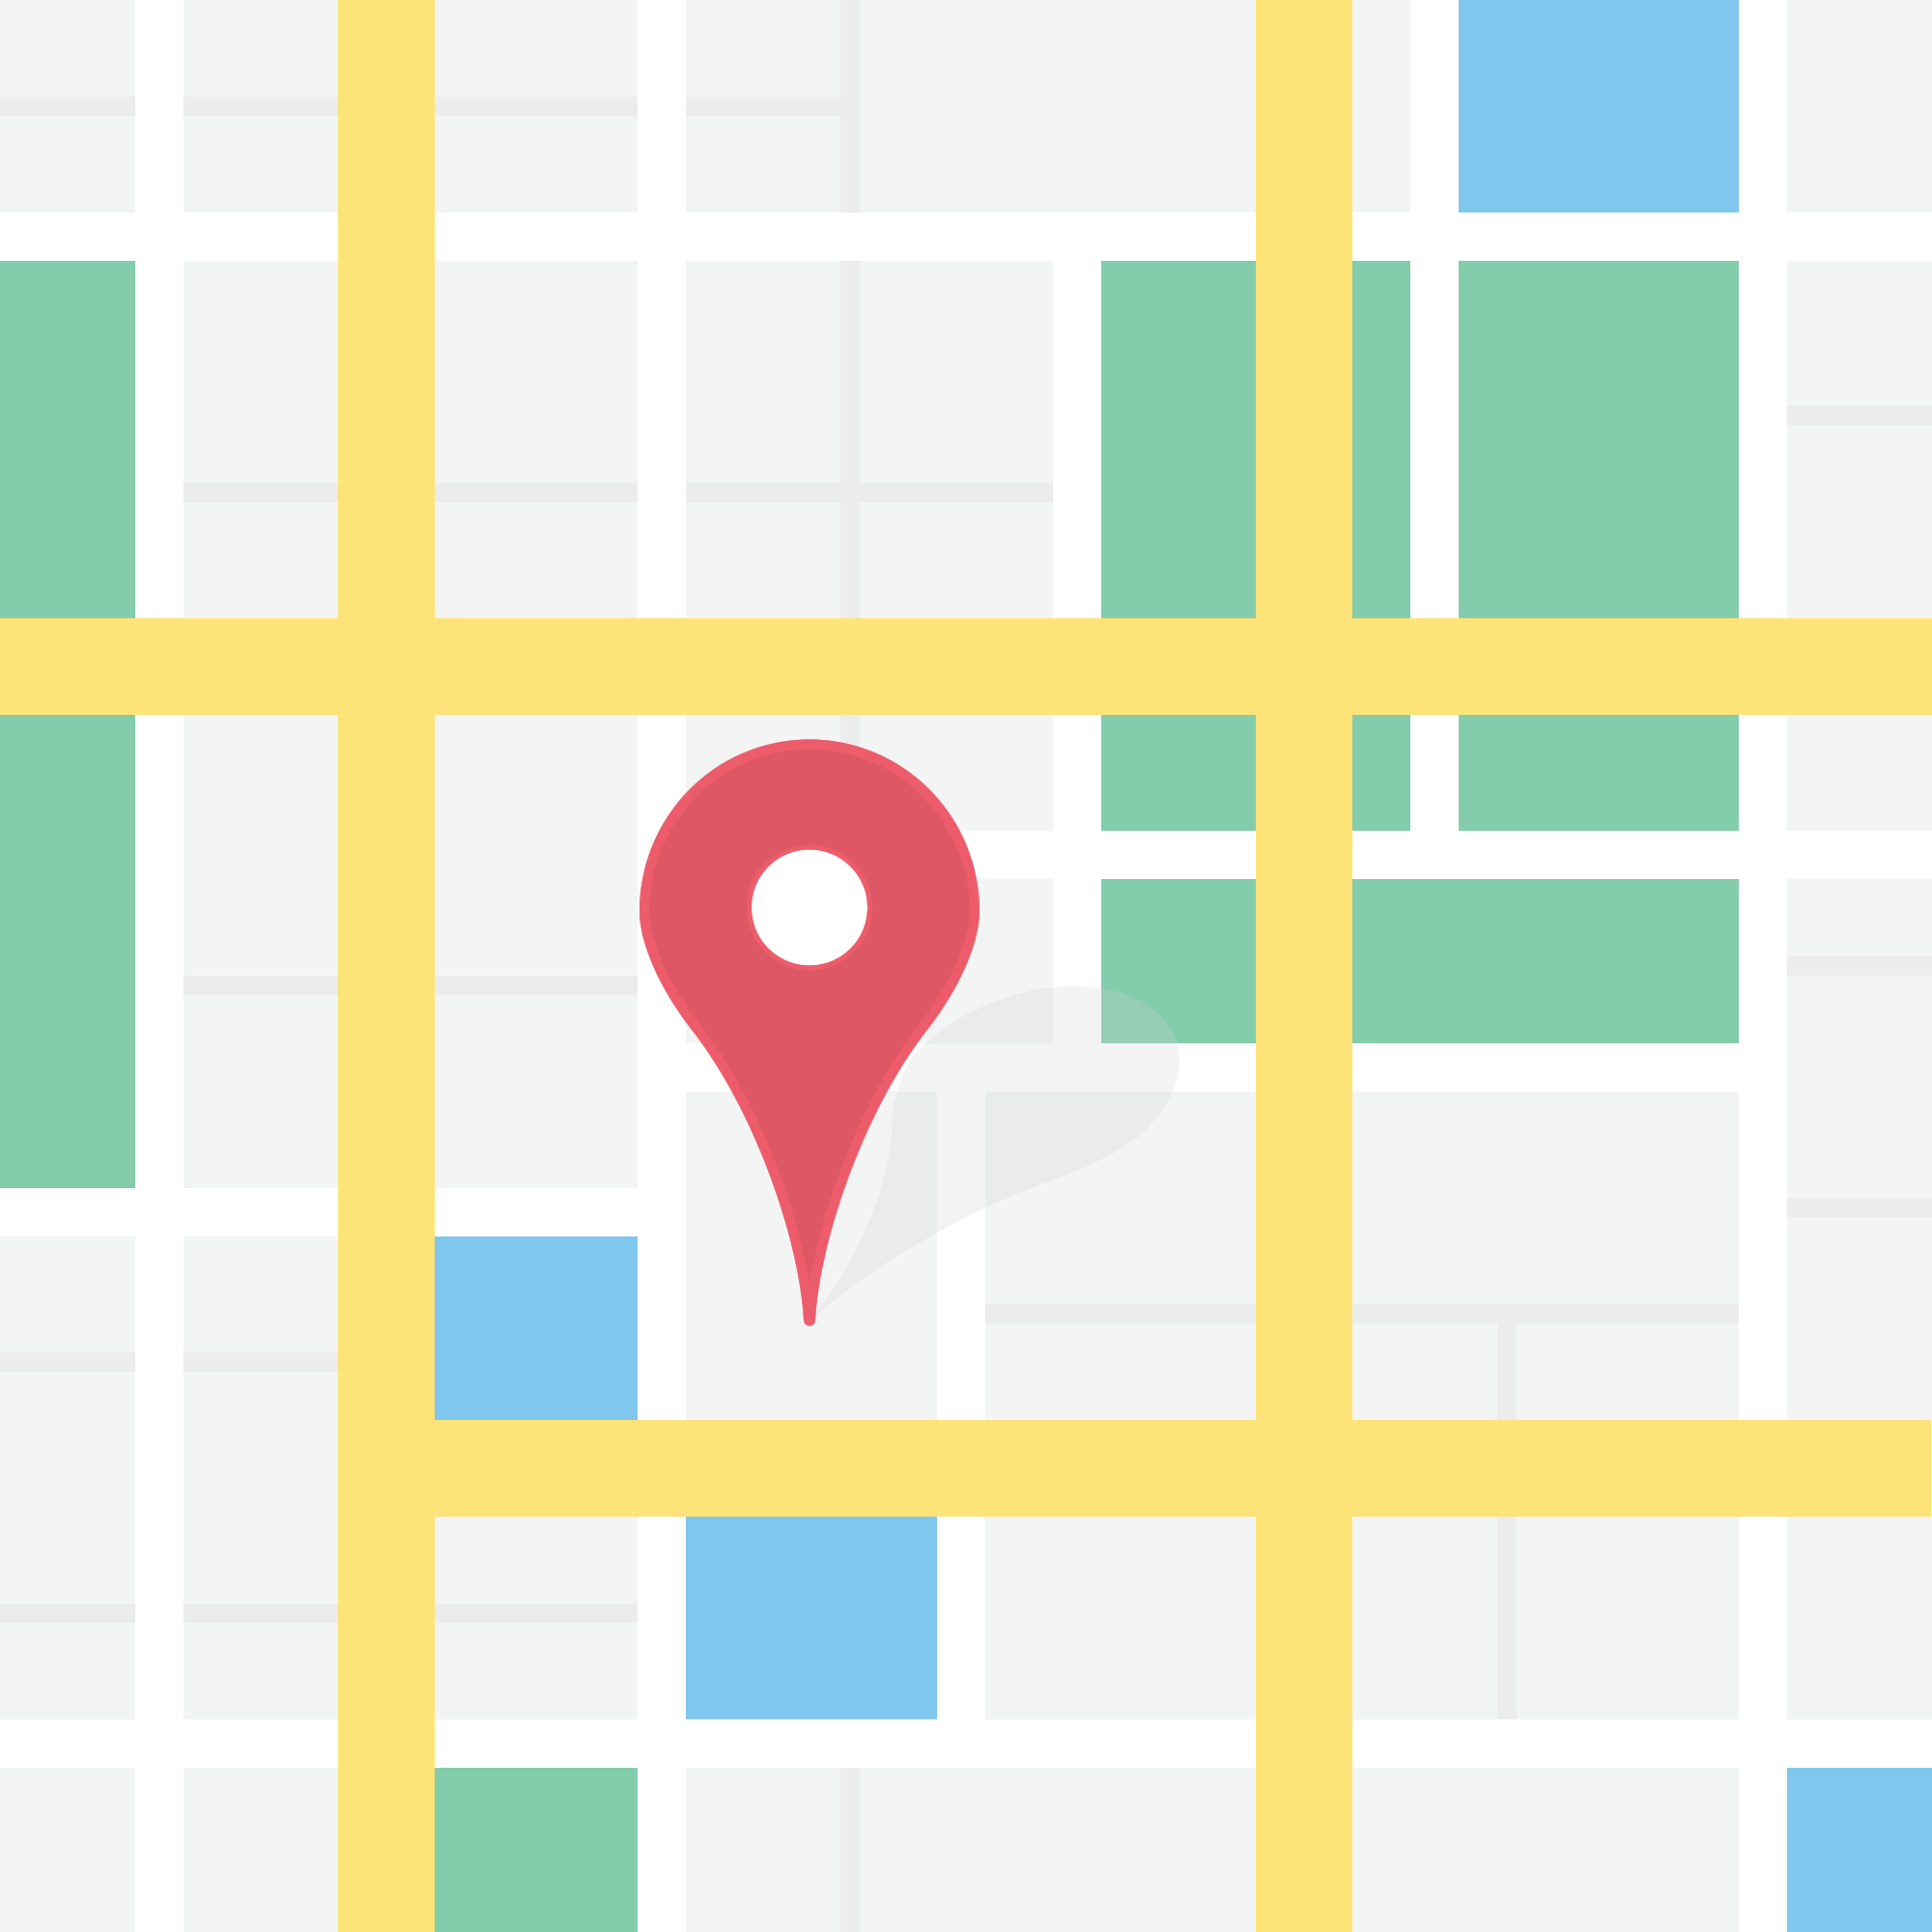 15 Flat Map Icon Images - Map Location Icons Flat PNG ... Map Flat on business map, apartment map, home map, land map, projection map, wall map, treasure map, red map, plate map, tube map, fake map, big map, full map, large map, classic map, thematic map, antarctica map, empty map,